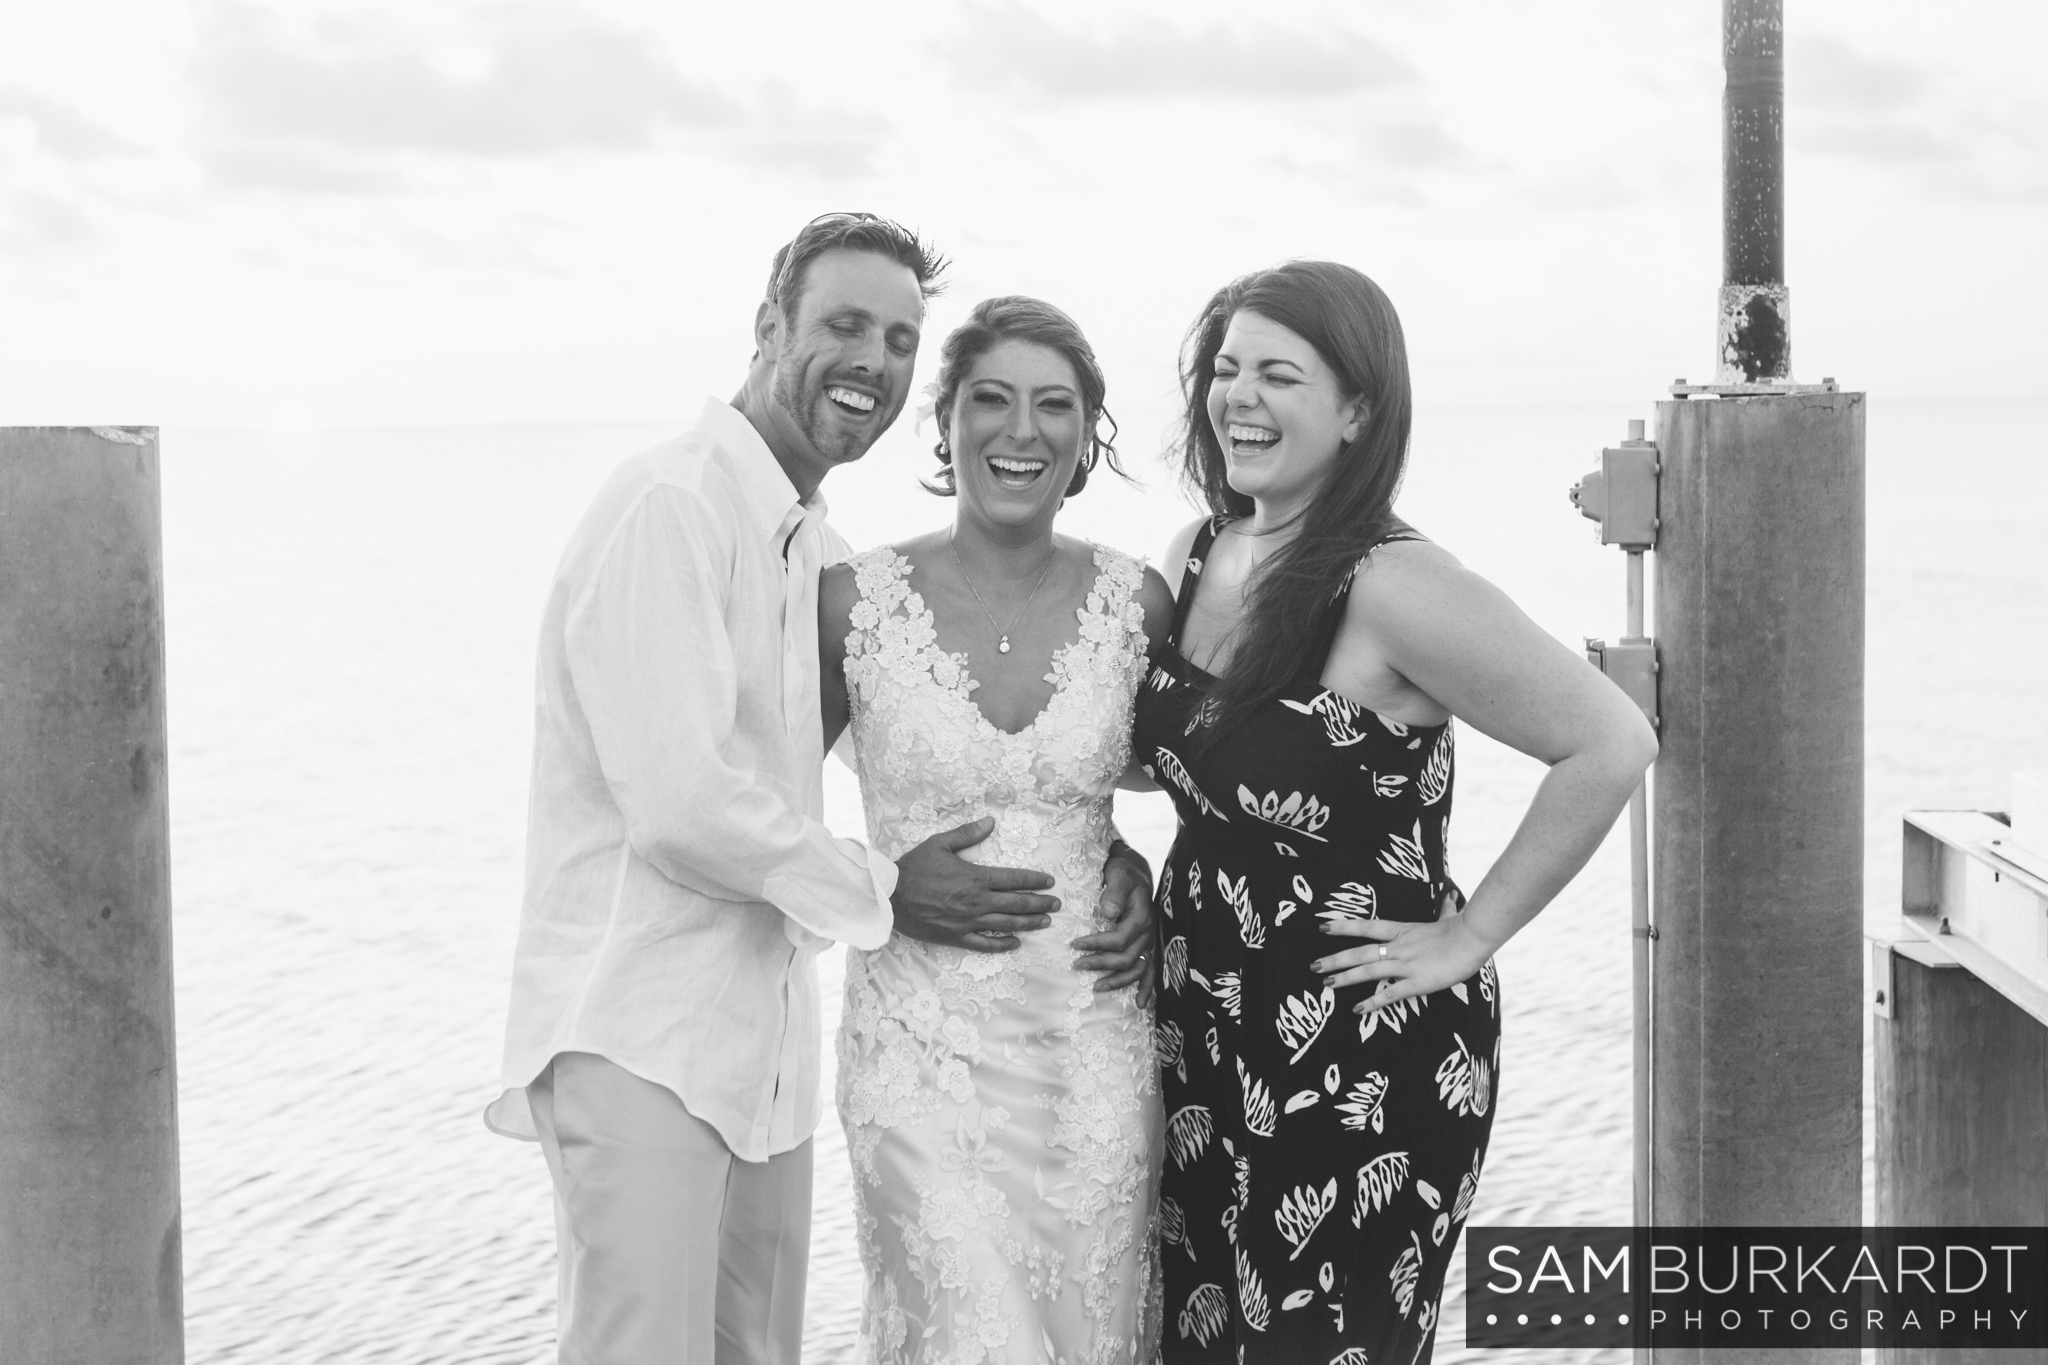 samburkardt_key_west_wedding_marathon_florida_summer_beach_ocean_front_0060.jpg